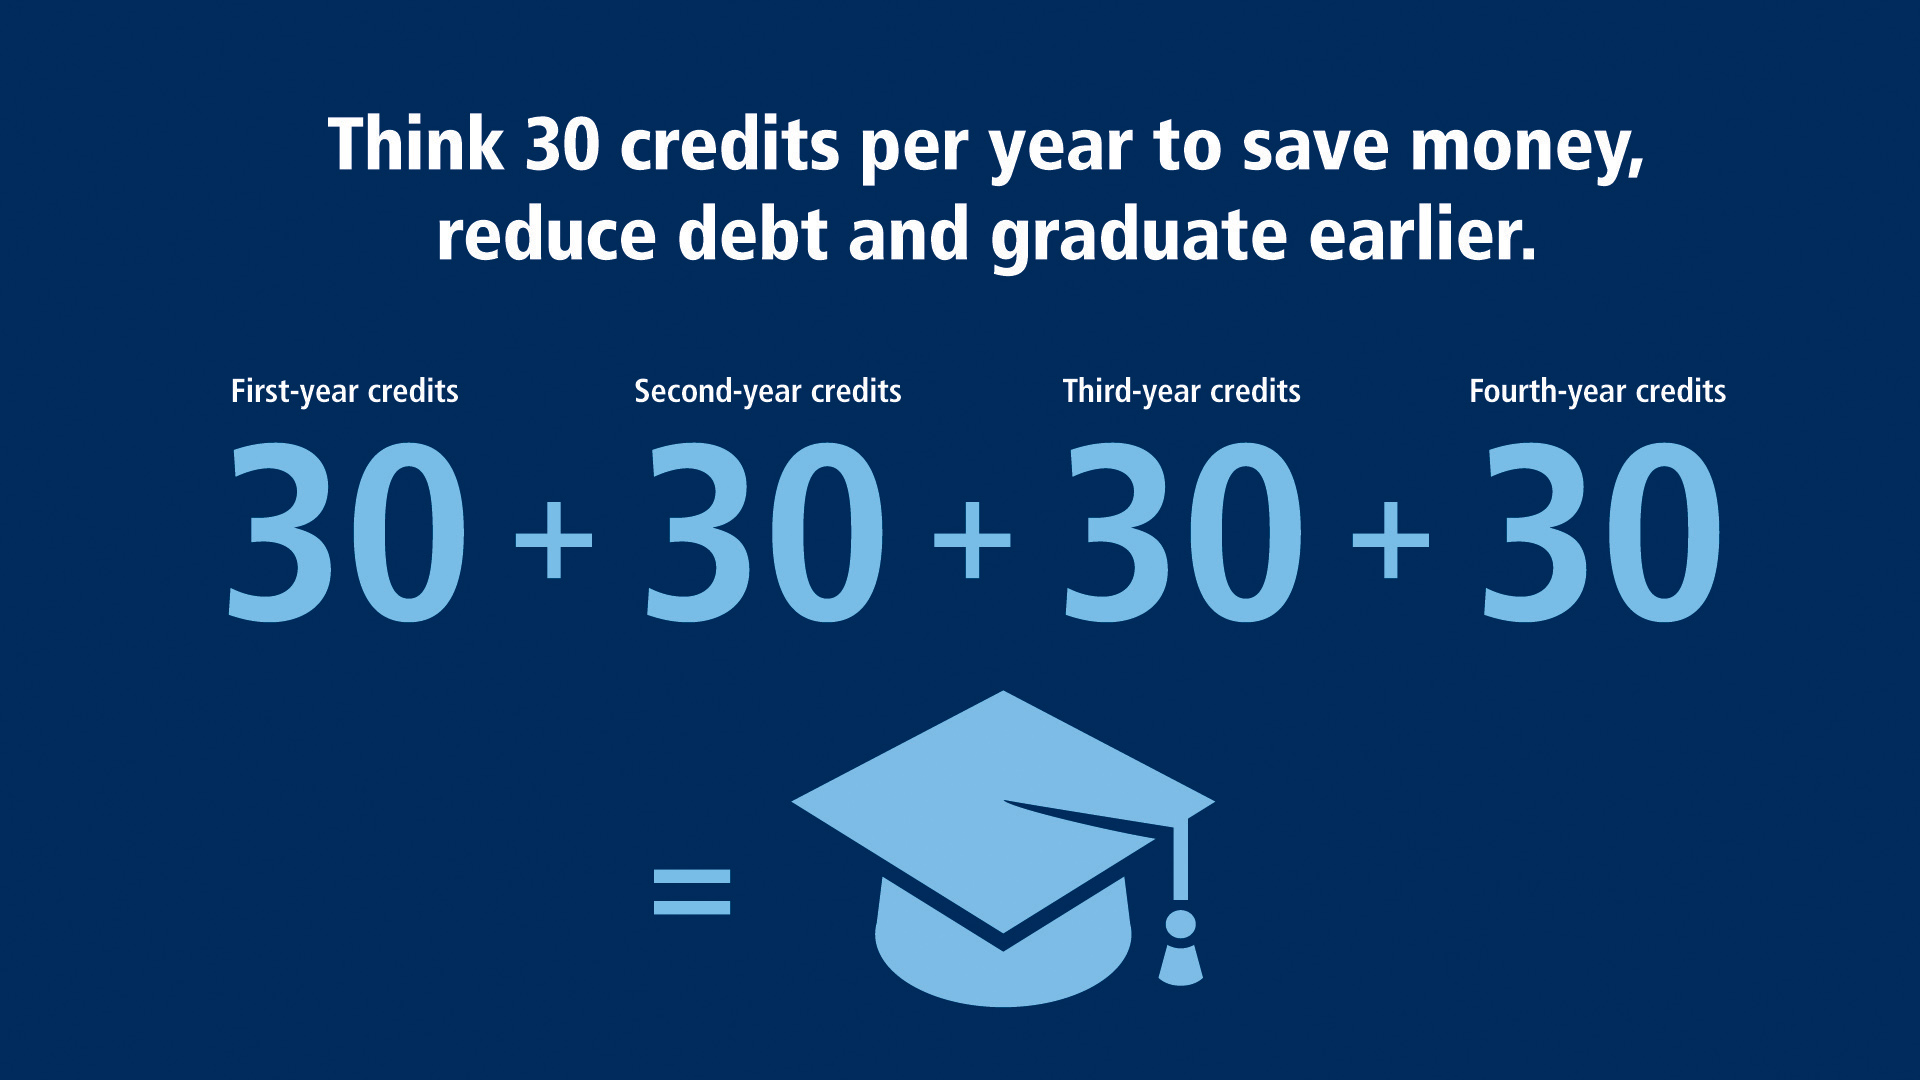 Think 30 graduate in 4 yrs chart_Small2